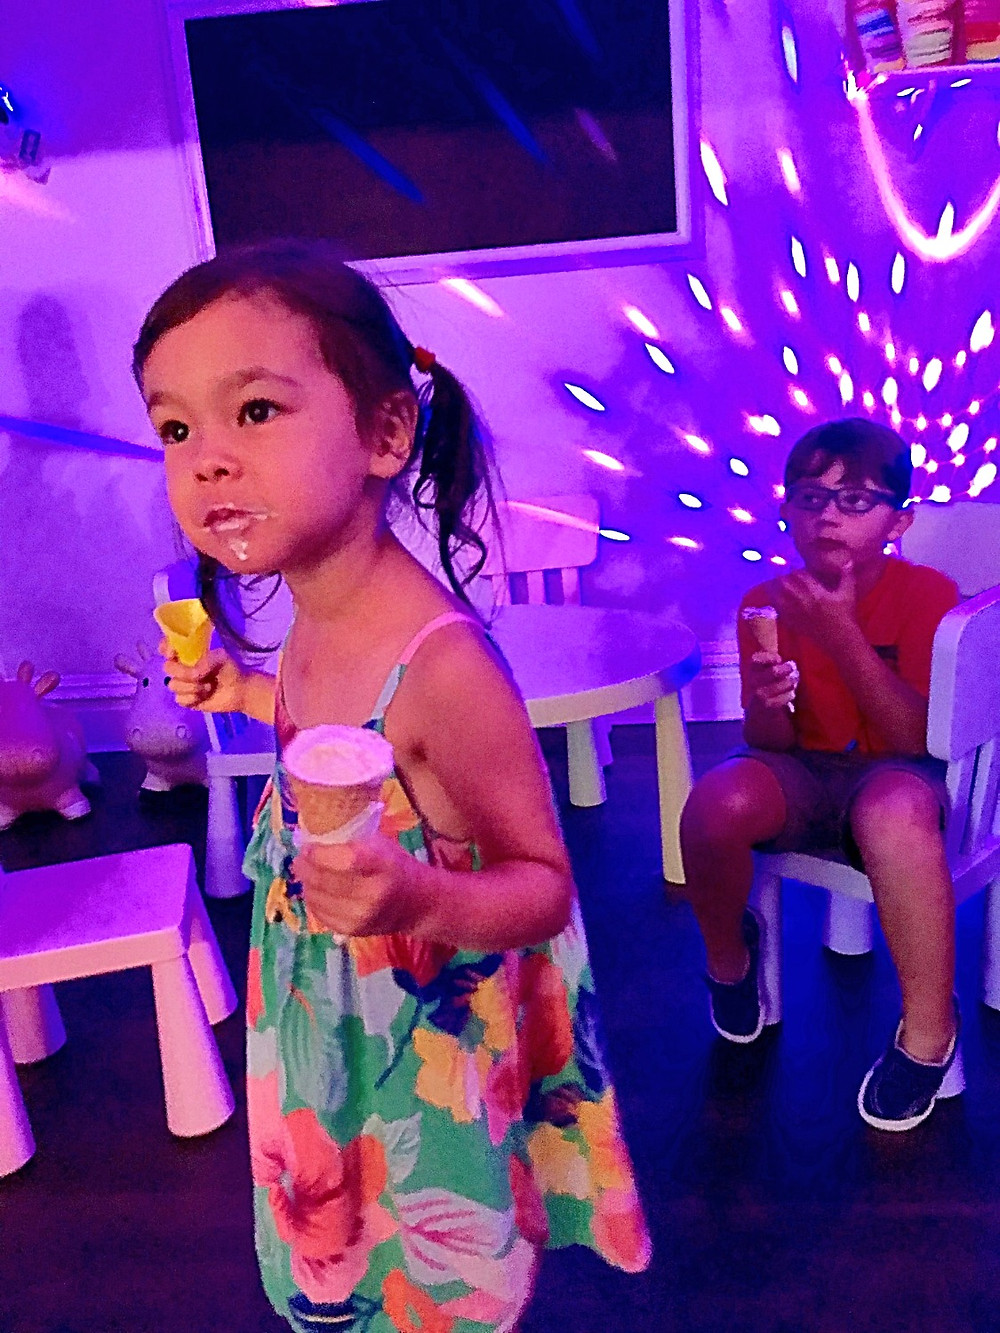 disco for kids, Al La Mode Ice Cream Shoppe, Curious G and Me, nut-free ice cream parlor, winter indoor fun guide for kids